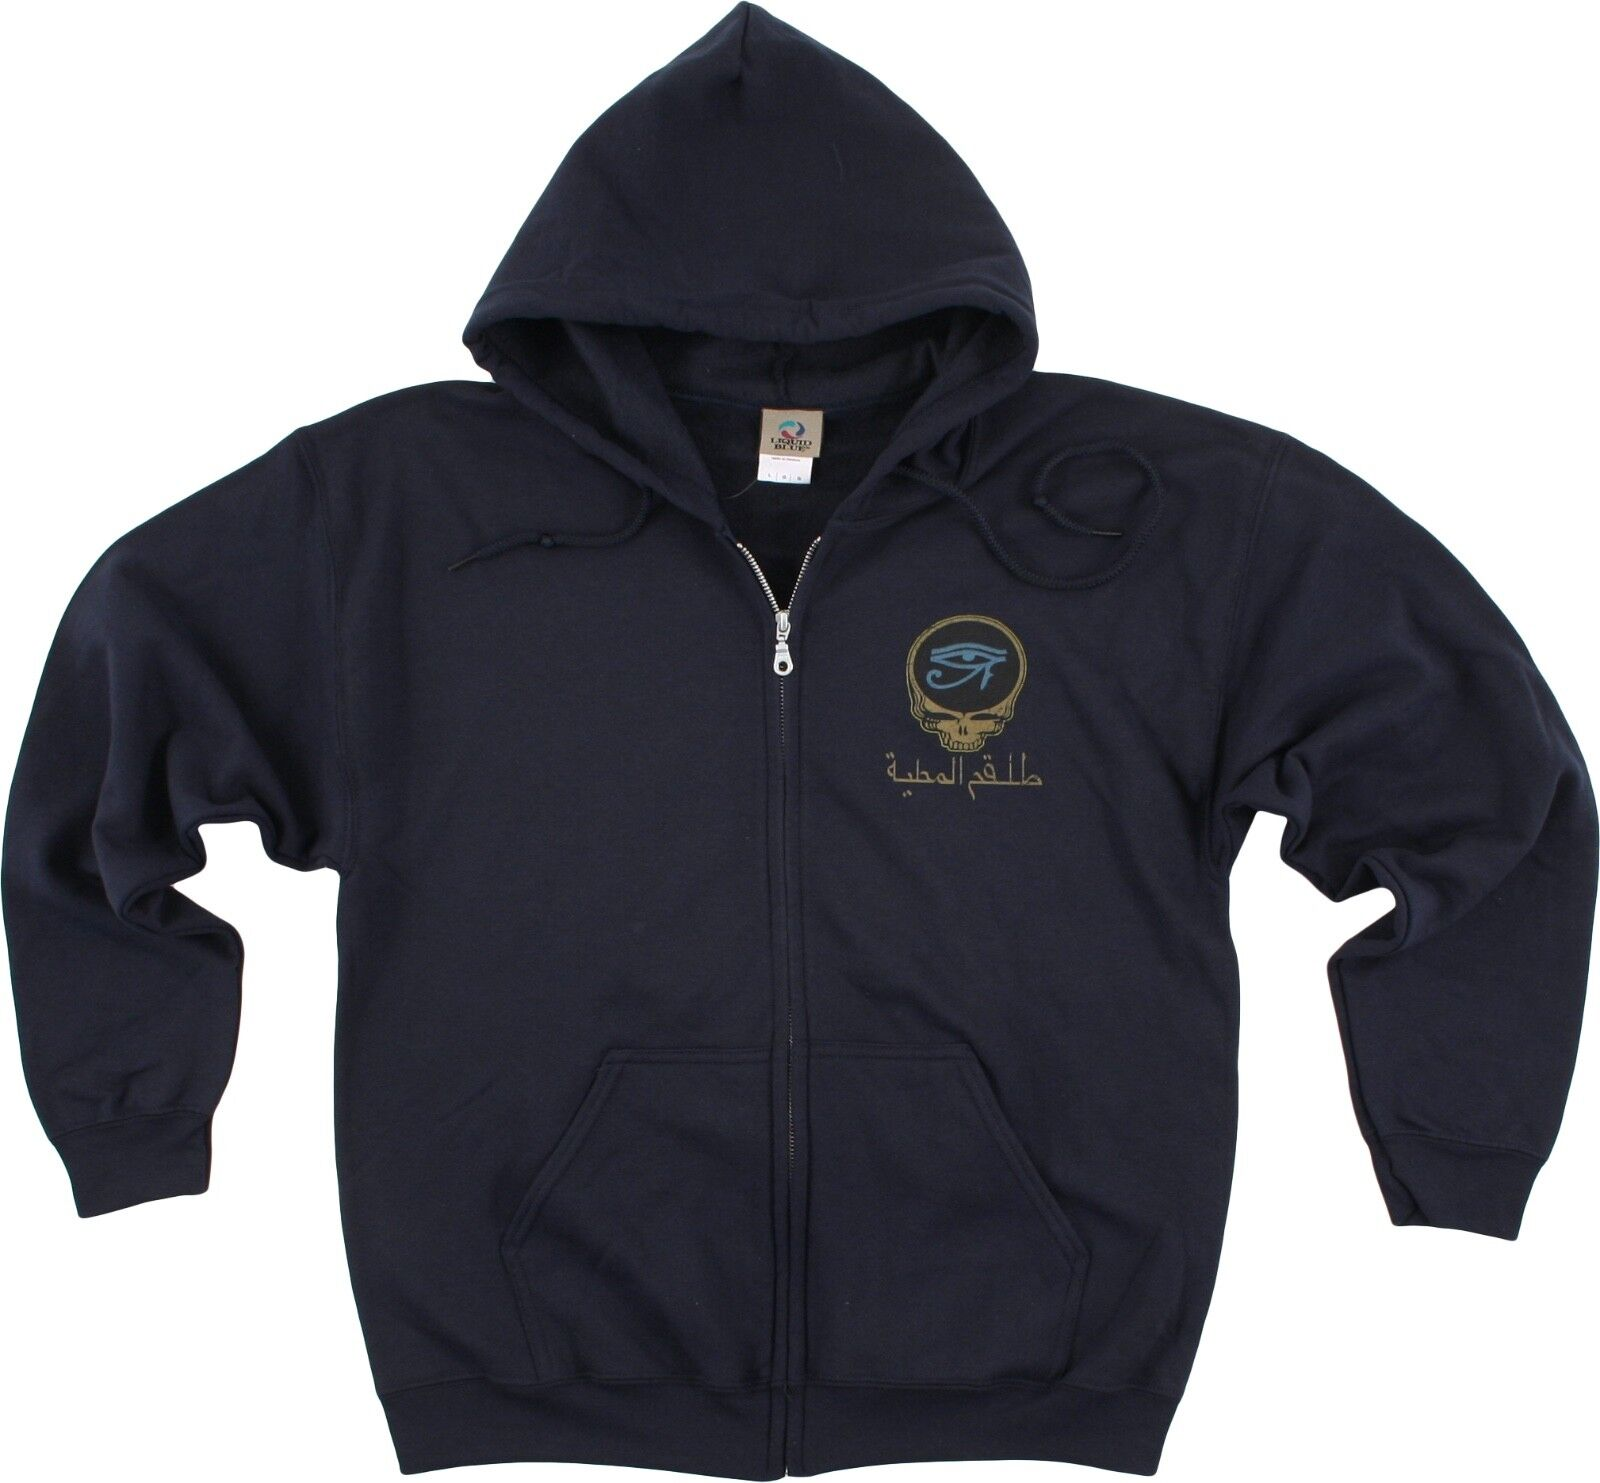 GRATEFUL DEAD-EGYPTIAN CREW-SYF-2 Sided ZIPPEROT HOODIE-SWEATSHIRT M-L-XL-2X